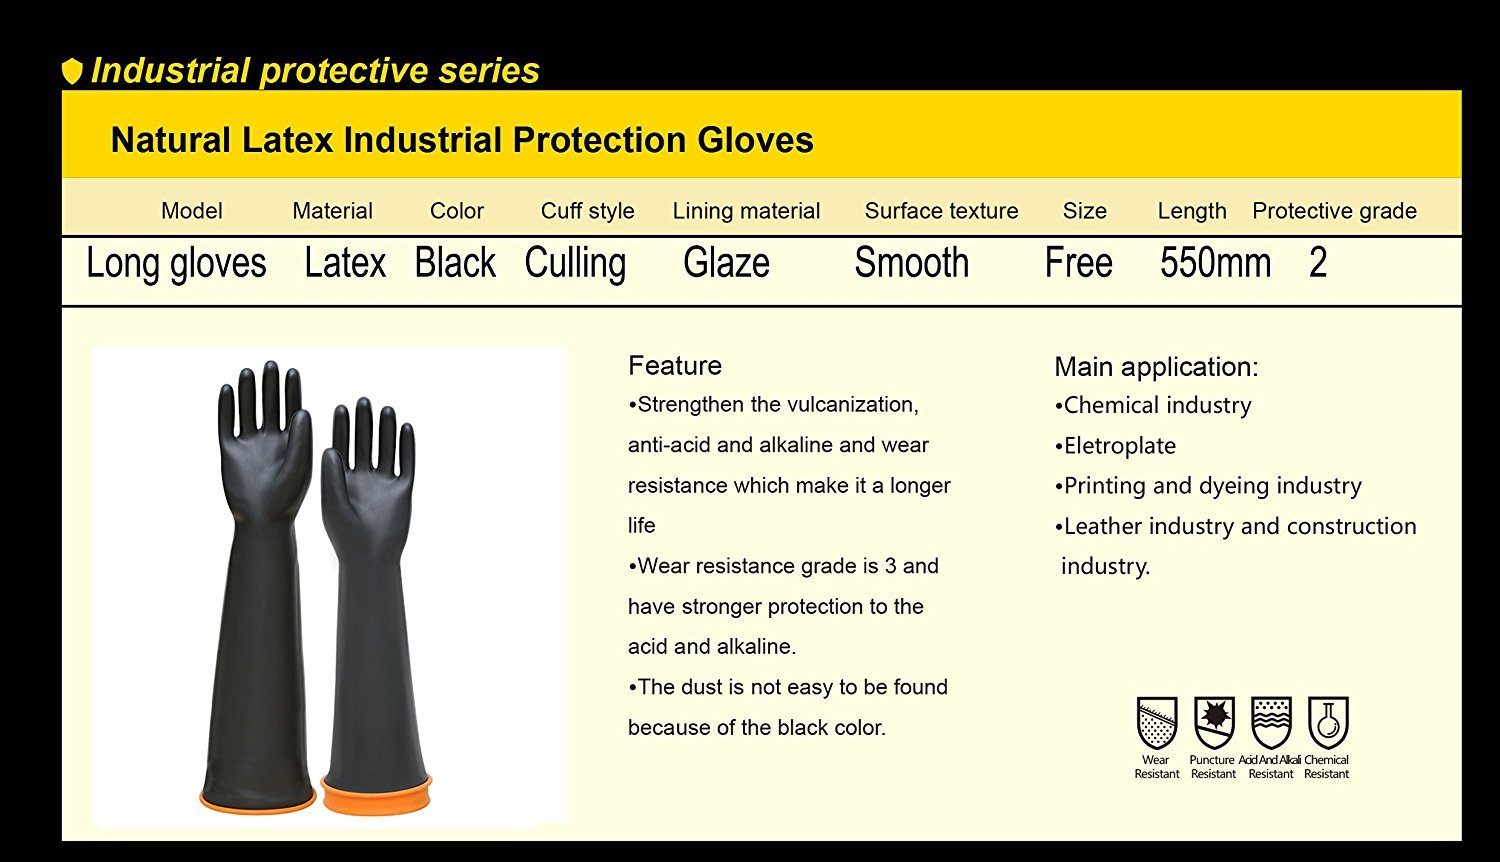 Double One Chemical Resistant Gloves,Safety Work Cleaning Protective Heavy Duty Industrial Gloves,Natural Latex Elbow Length 22'' Length Black 1 Pair Size 10 by DOUBLE ONE (Image #4)